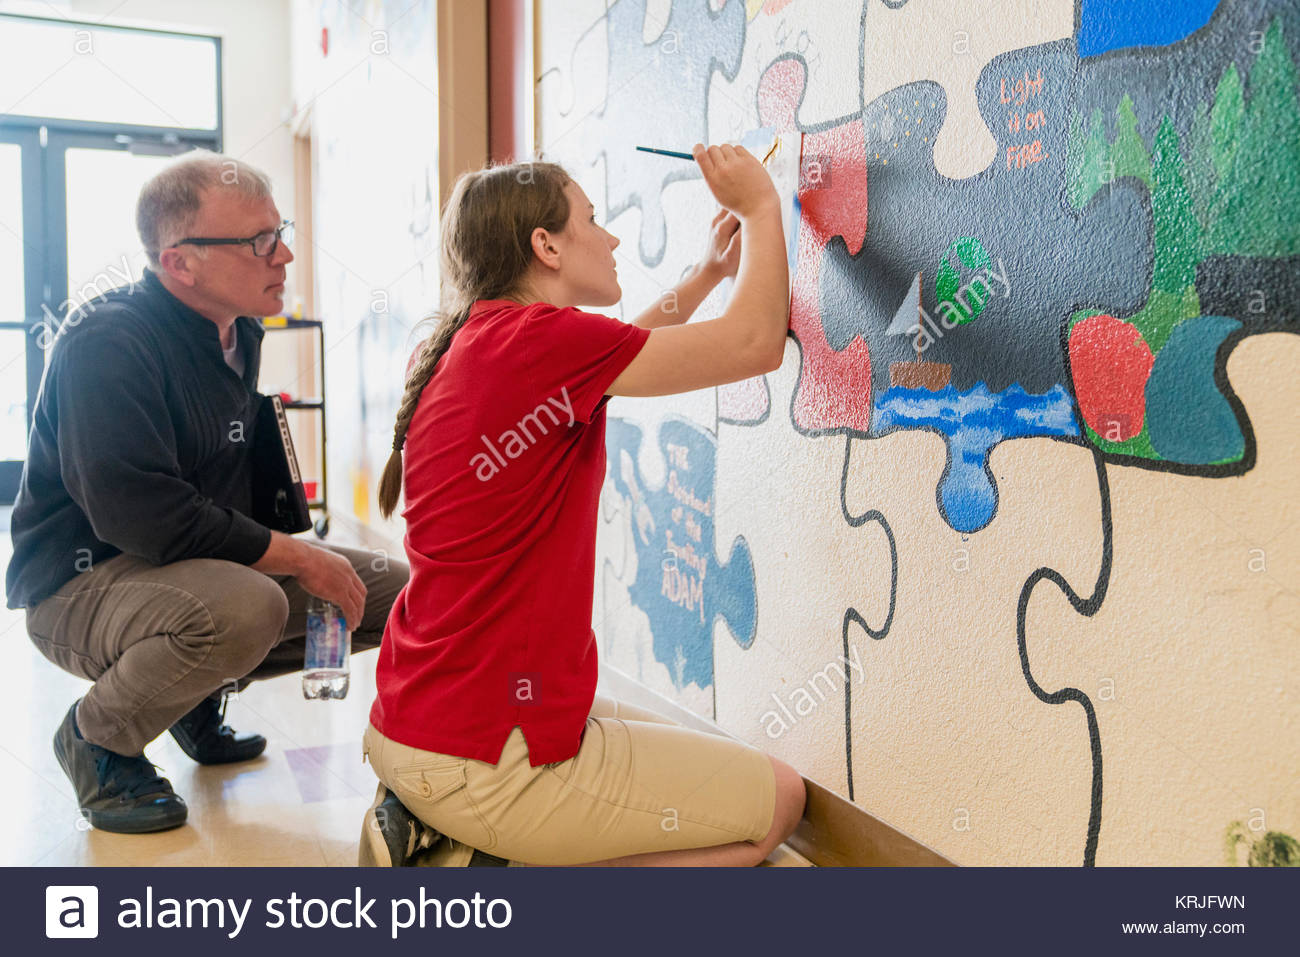 Teacher watching girl painting mural on wall at school - Stock Image